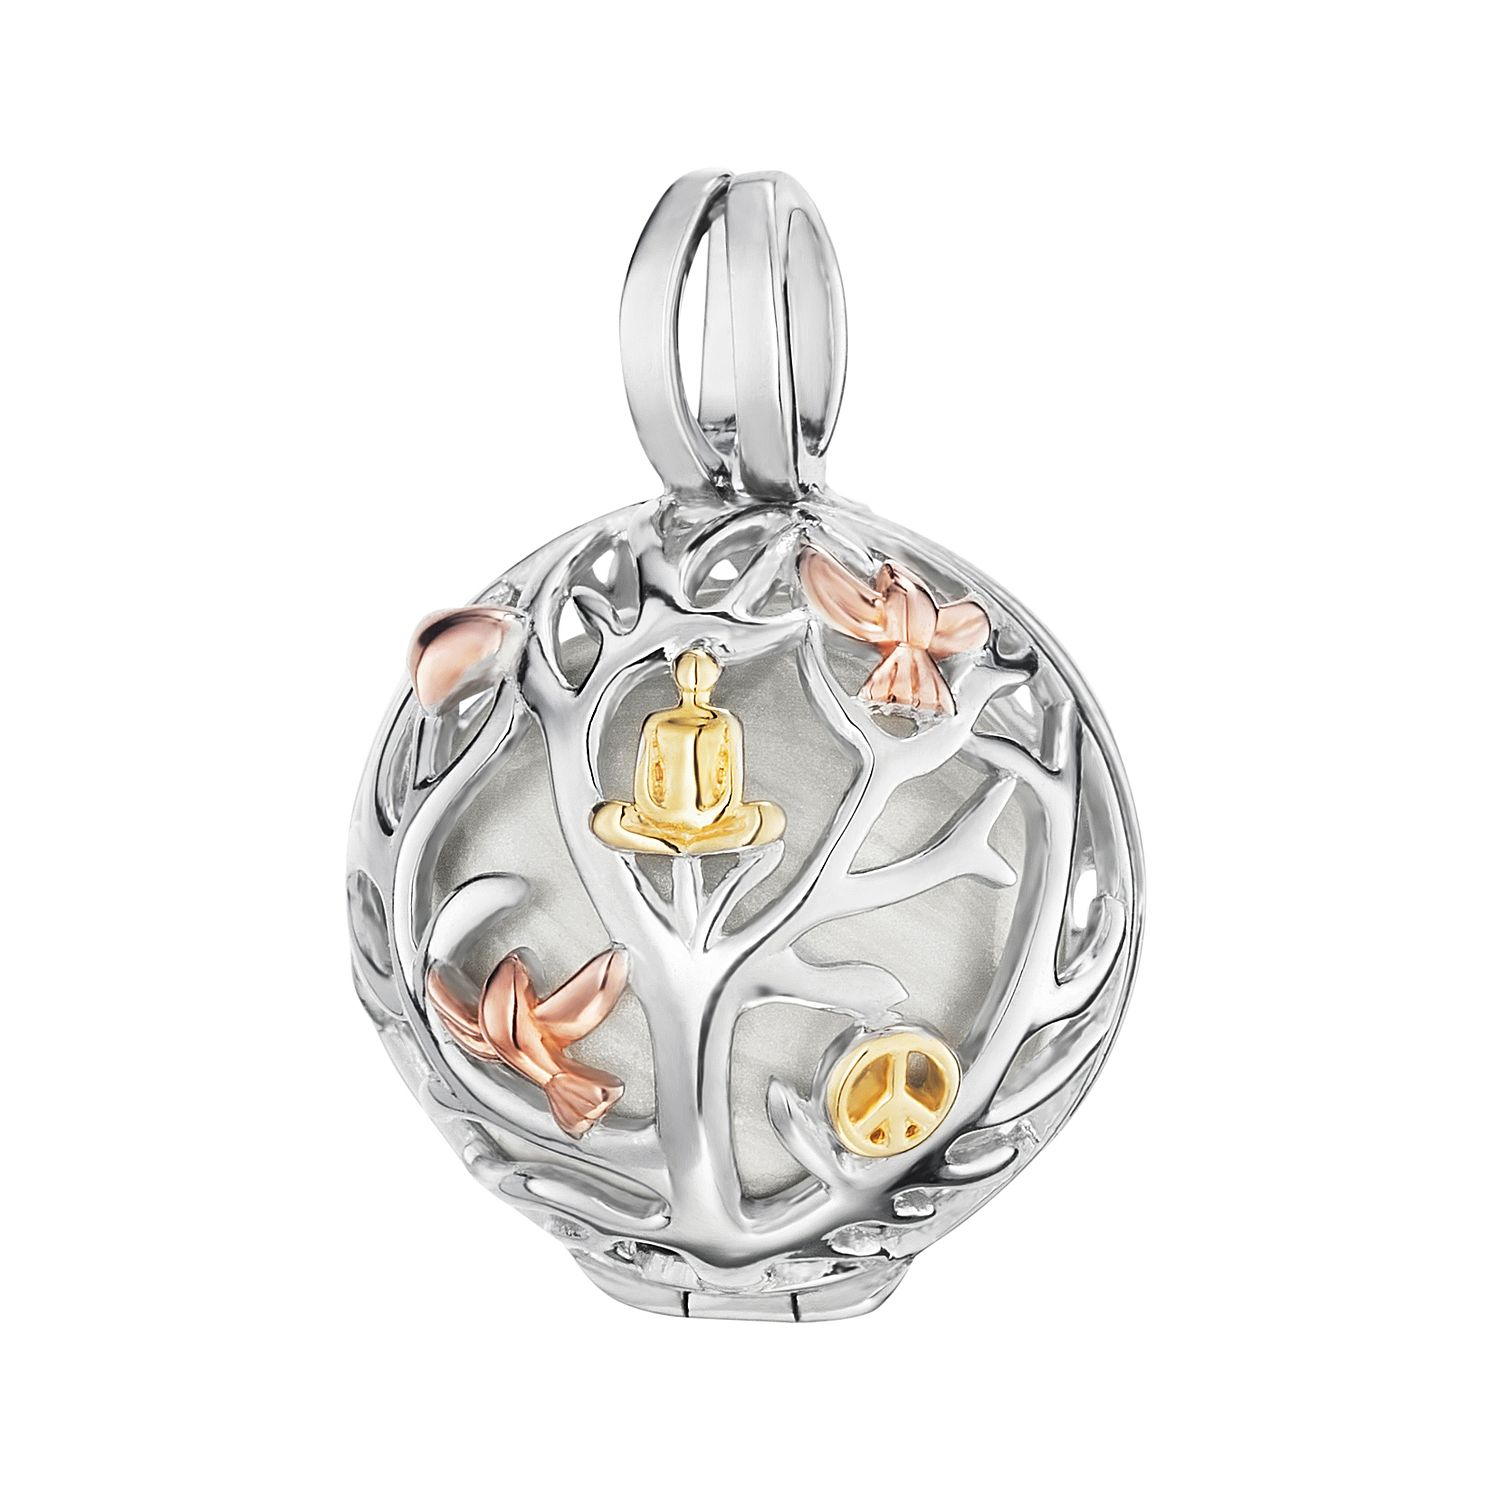 Angel Whisperer Tree of Life Silver Pearl Chime Pendant - Product number 4220676